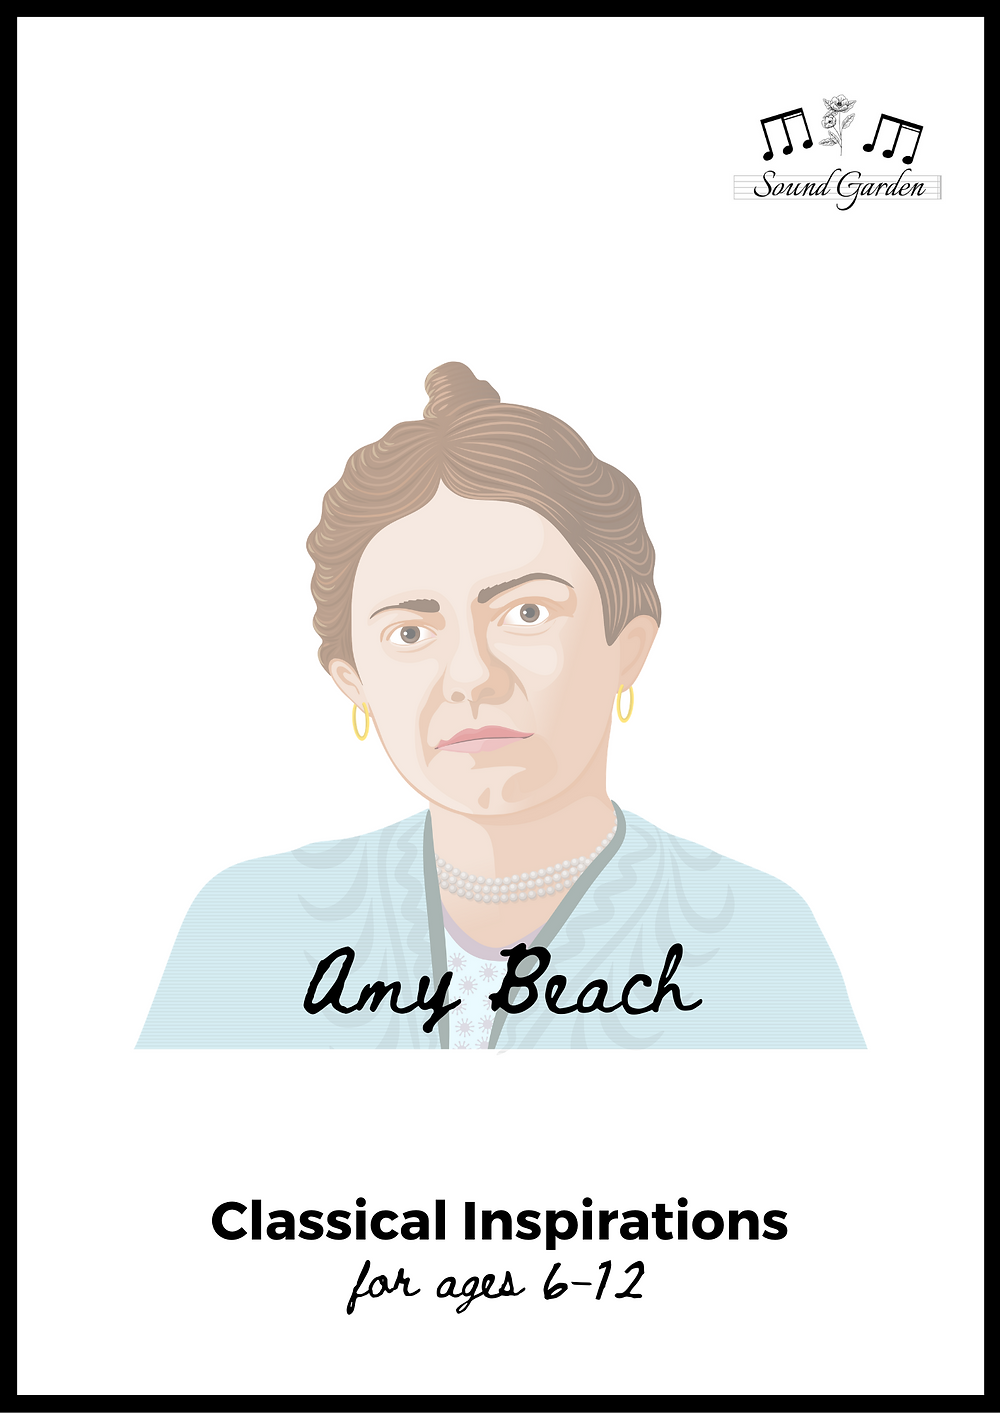 Front page of Classical Inspirations: Amy Beach activity book for ages 6-12